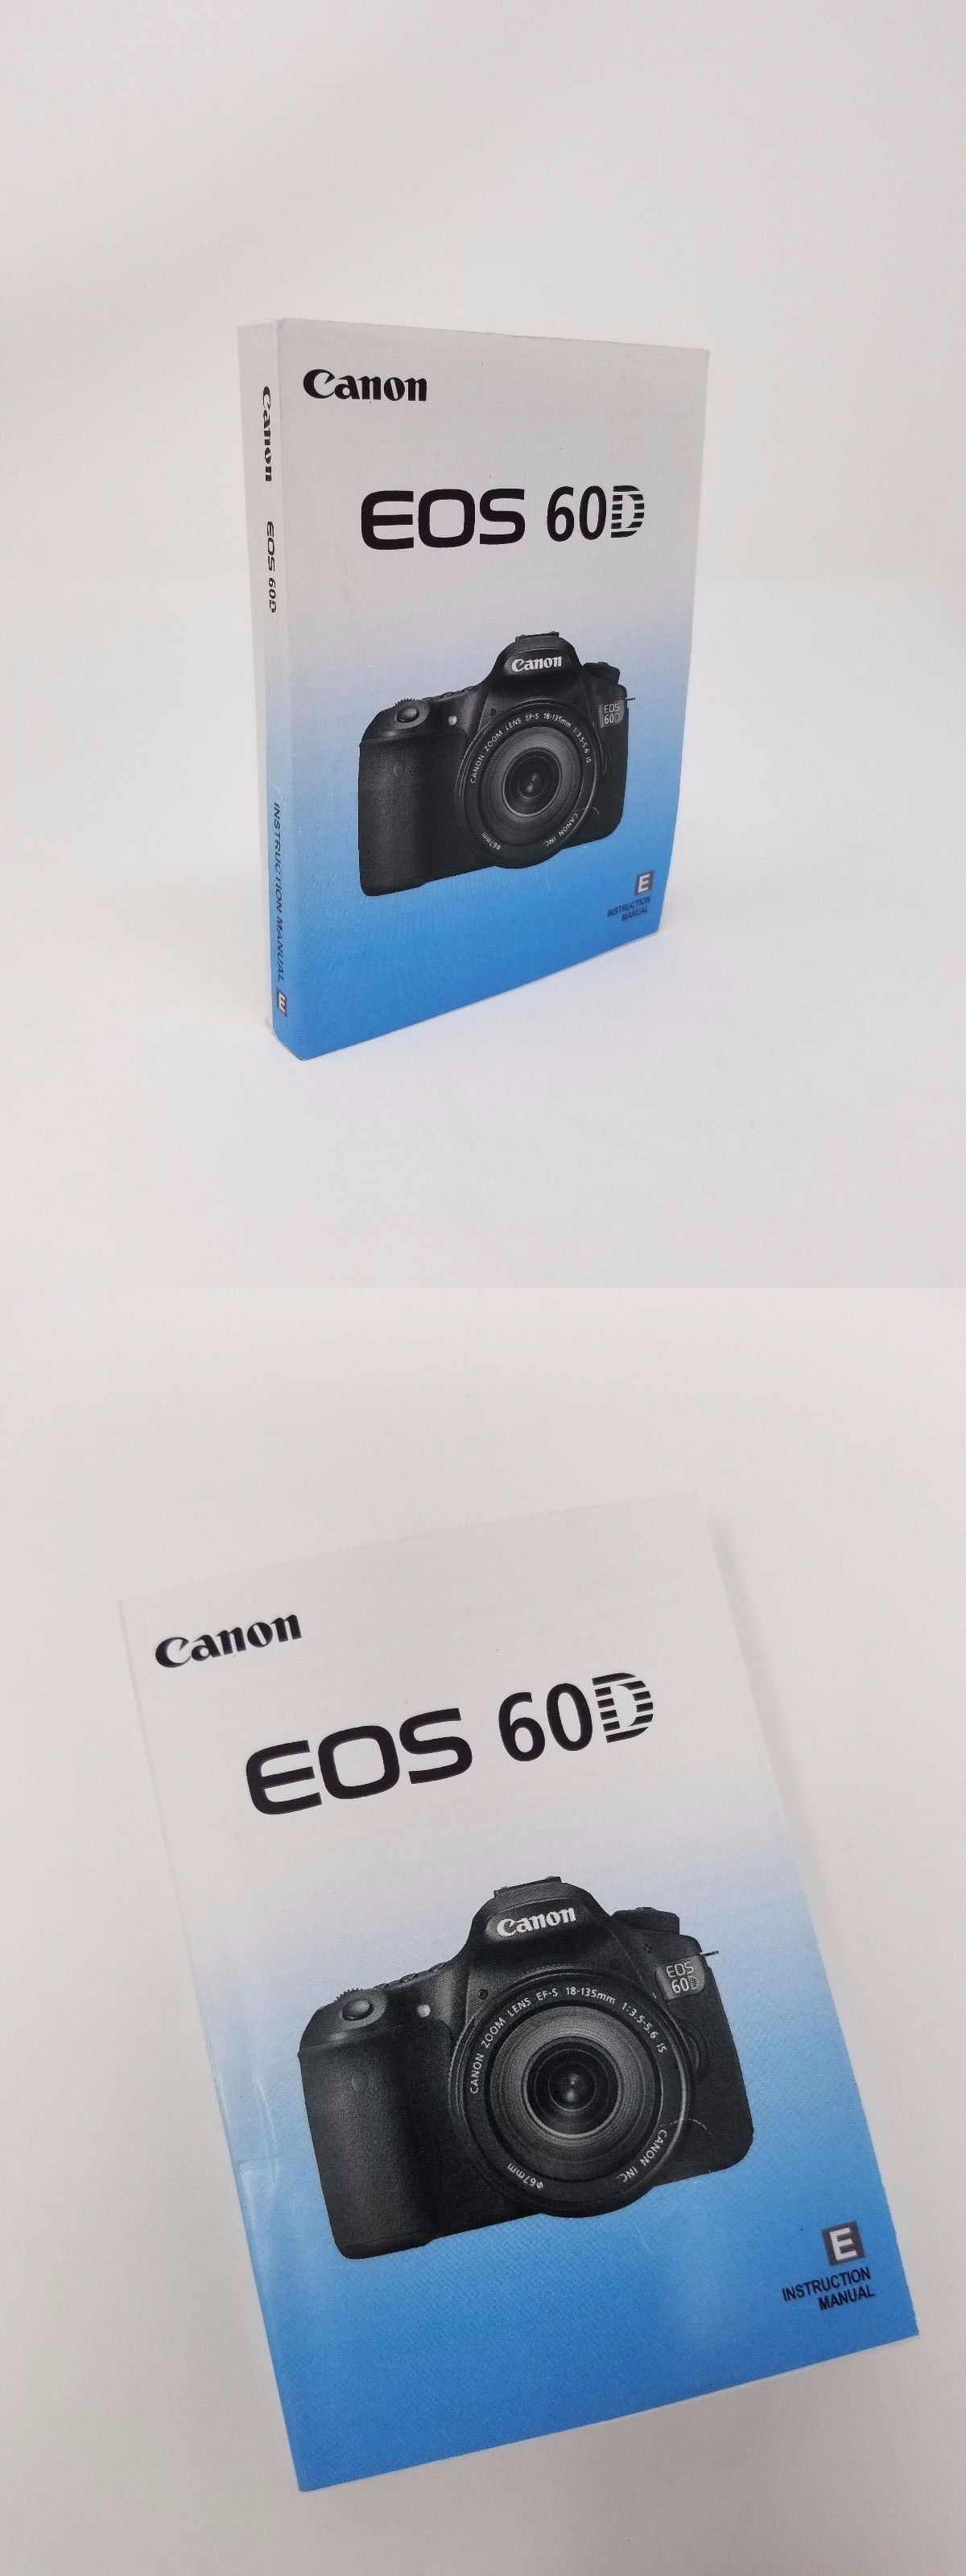 Camera Manuals and Guides 4684: Canon Eos 60D Instruction Owners Manual  Book New ->